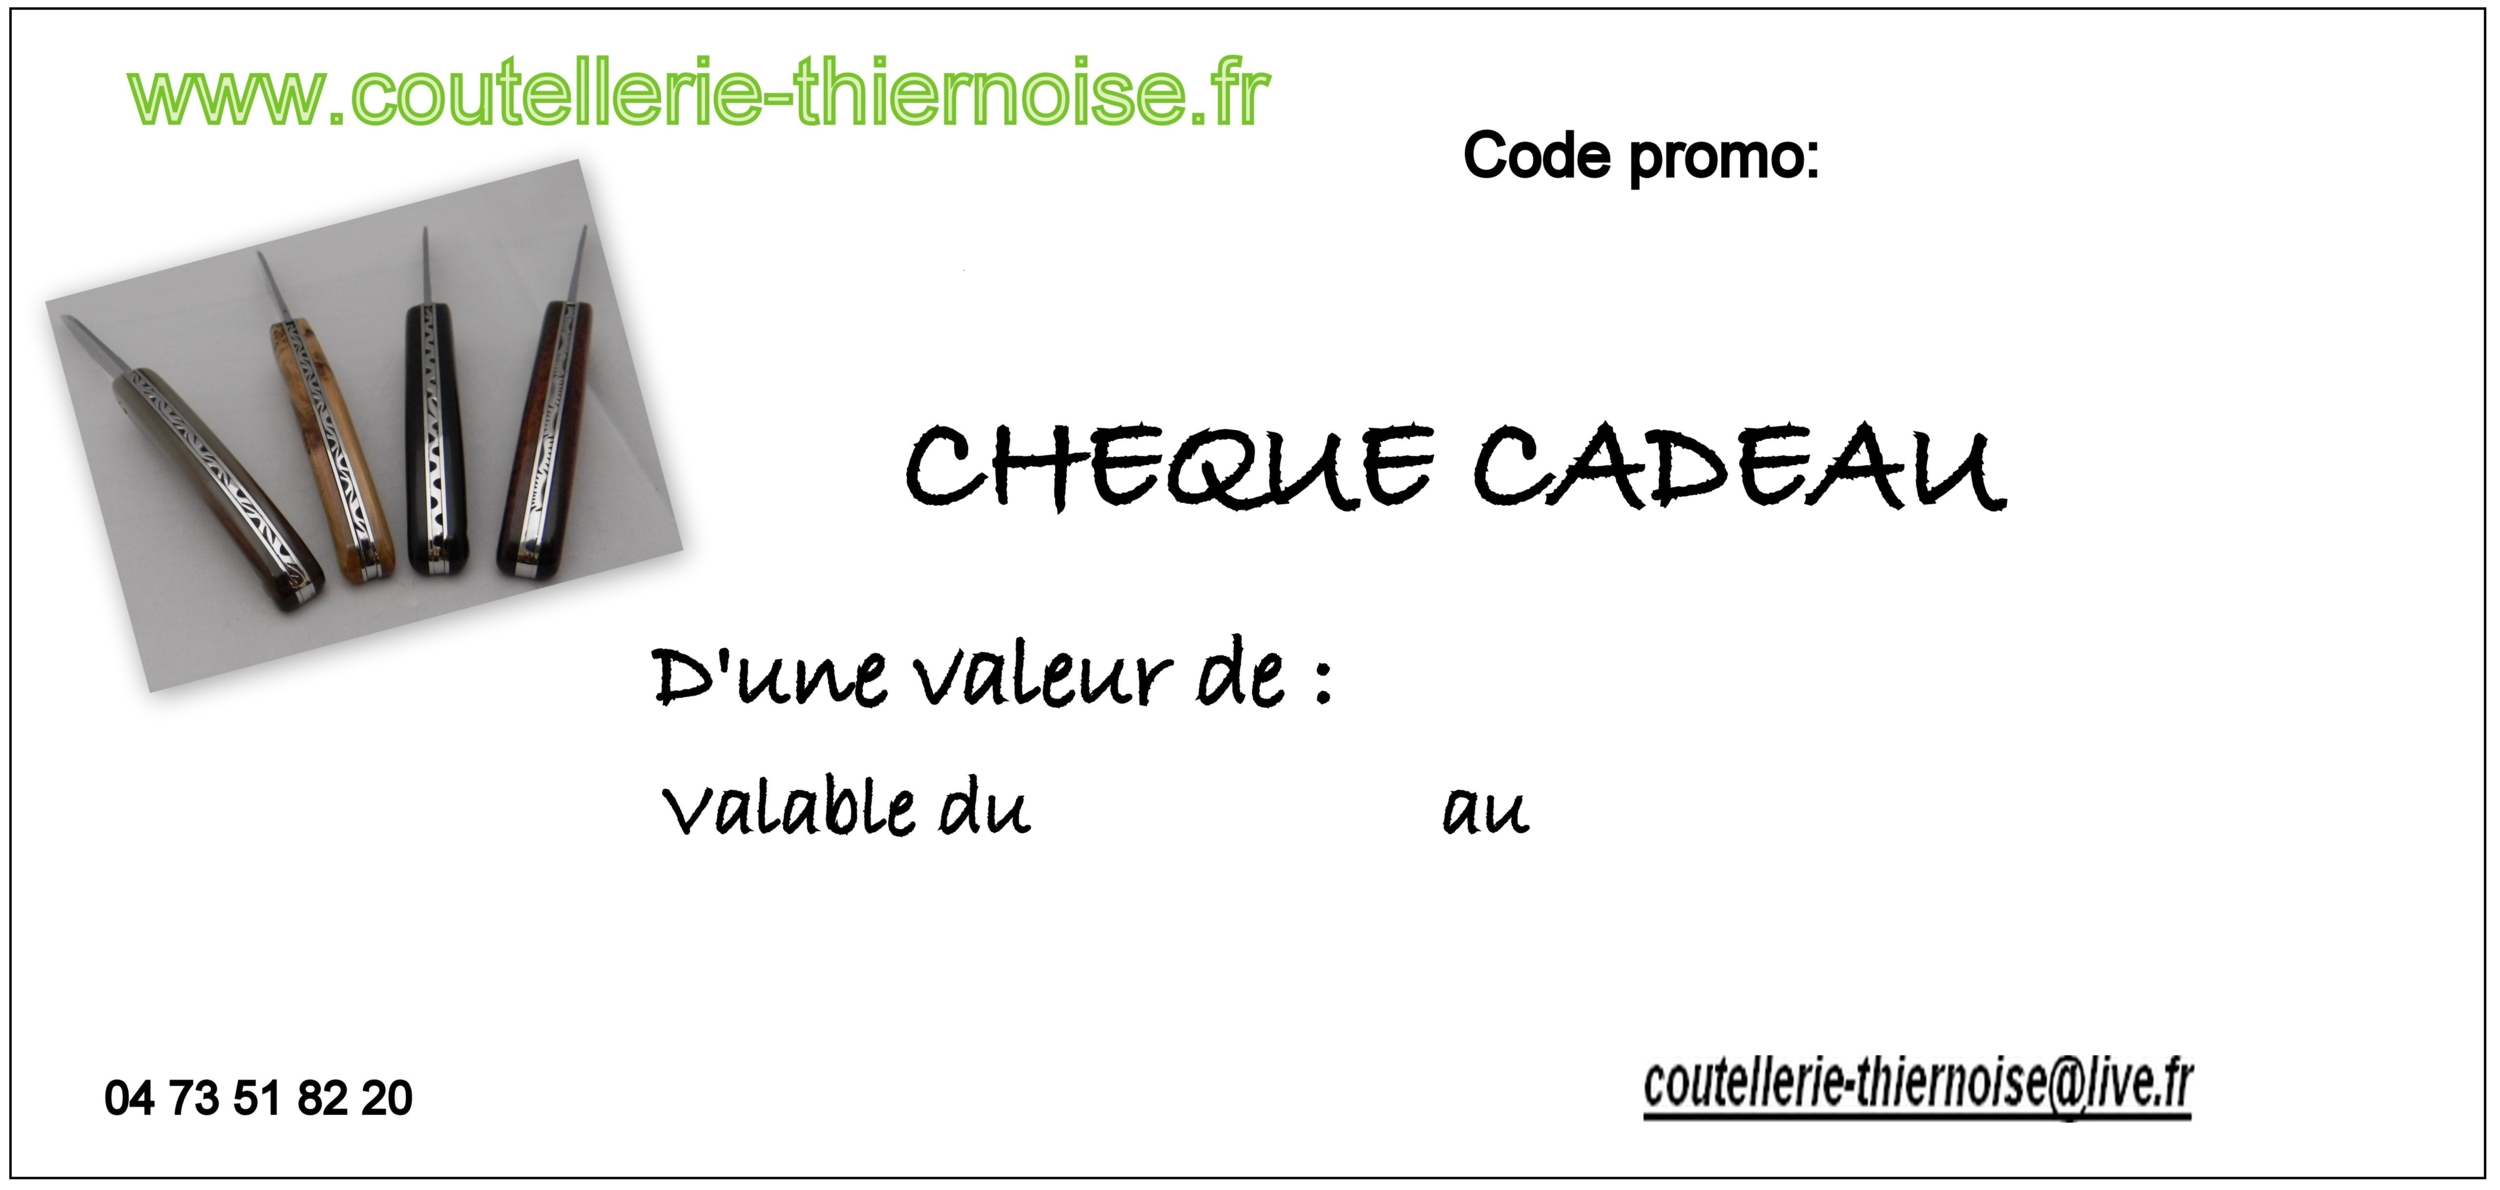 cheque cadeau cheque cadeau coutellerie thiernoise. Black Bedroom Furniture Sets. Home Design Ideas